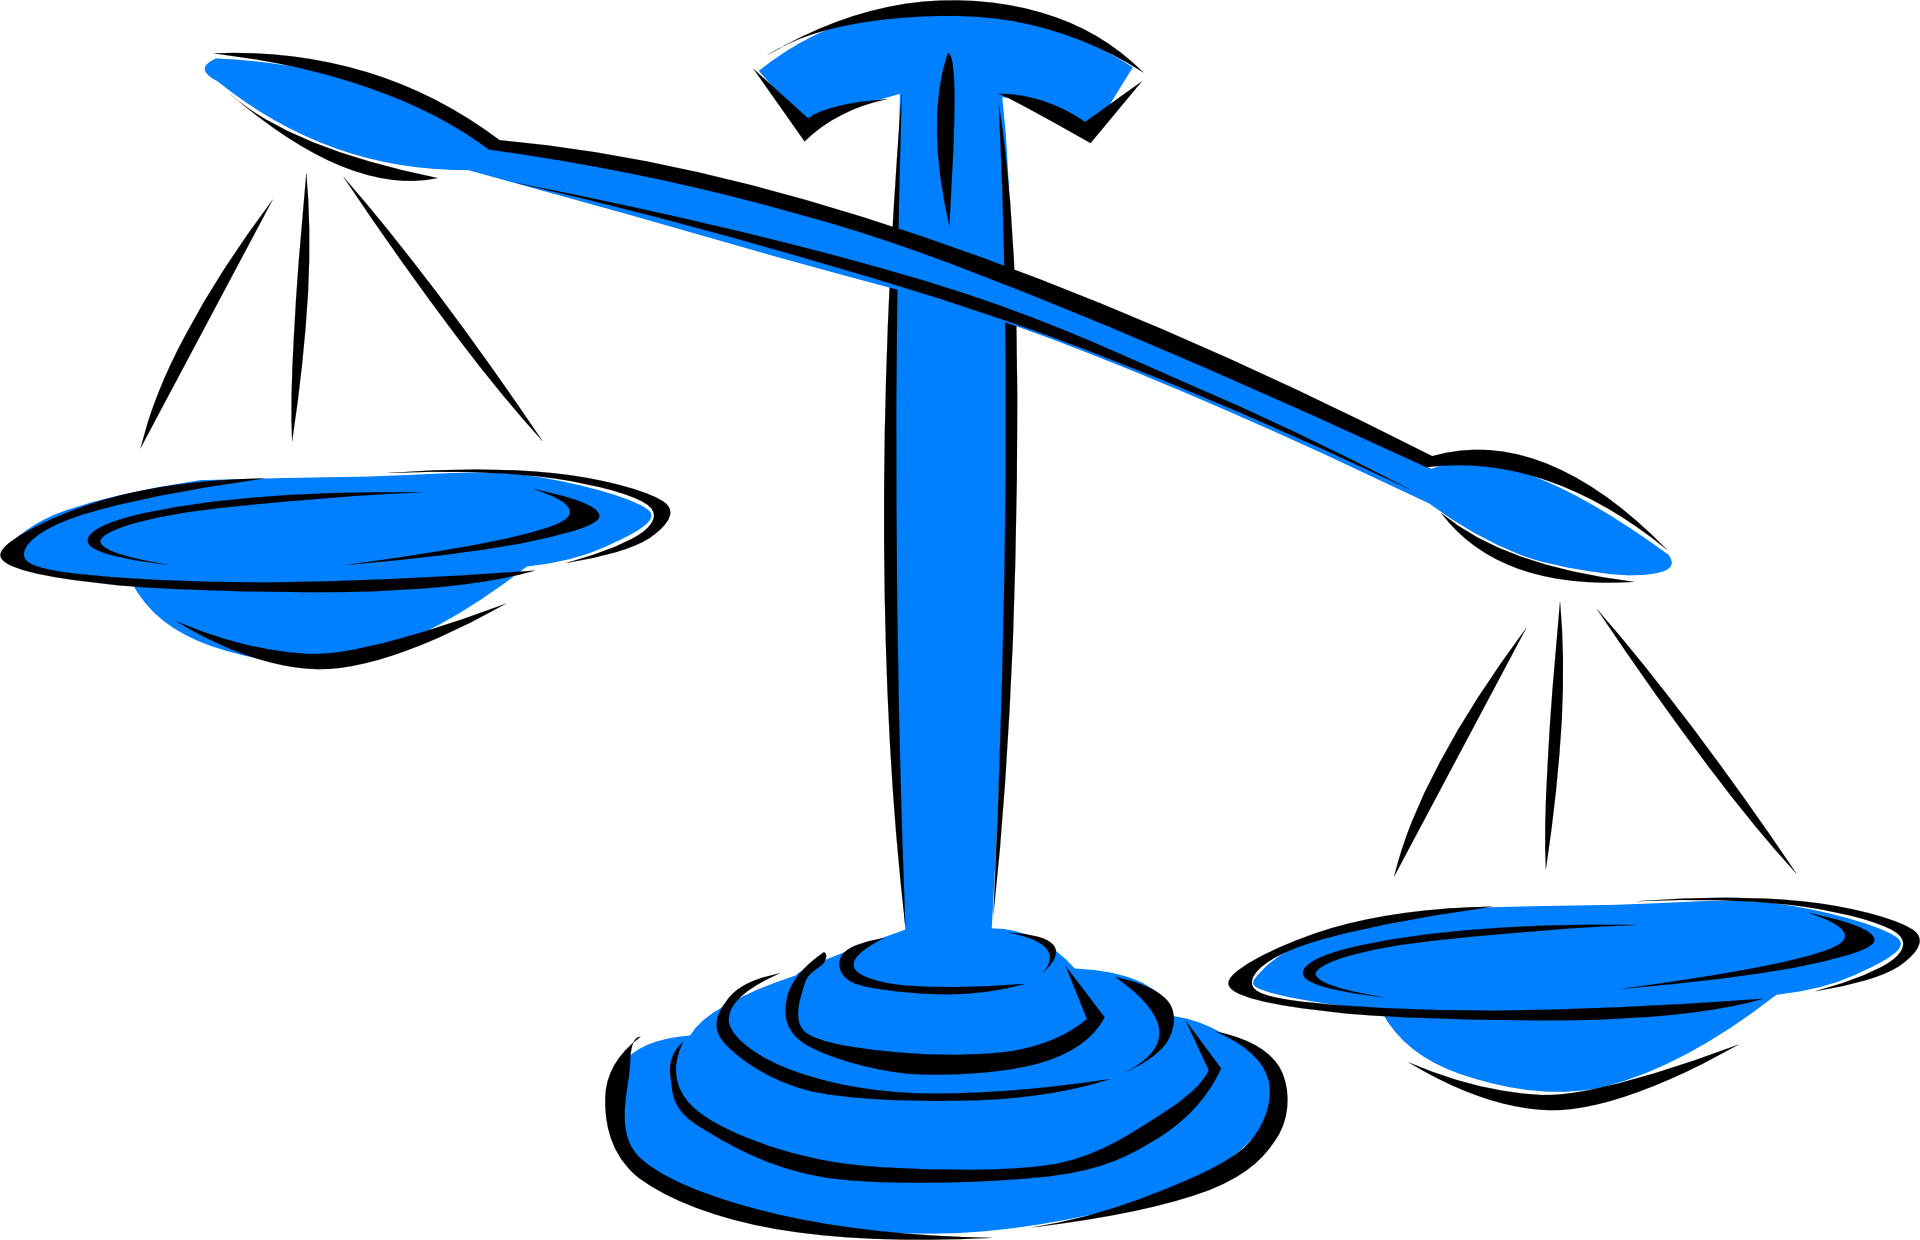 svg library download Balanced budget law is. Economy clipart economy scale